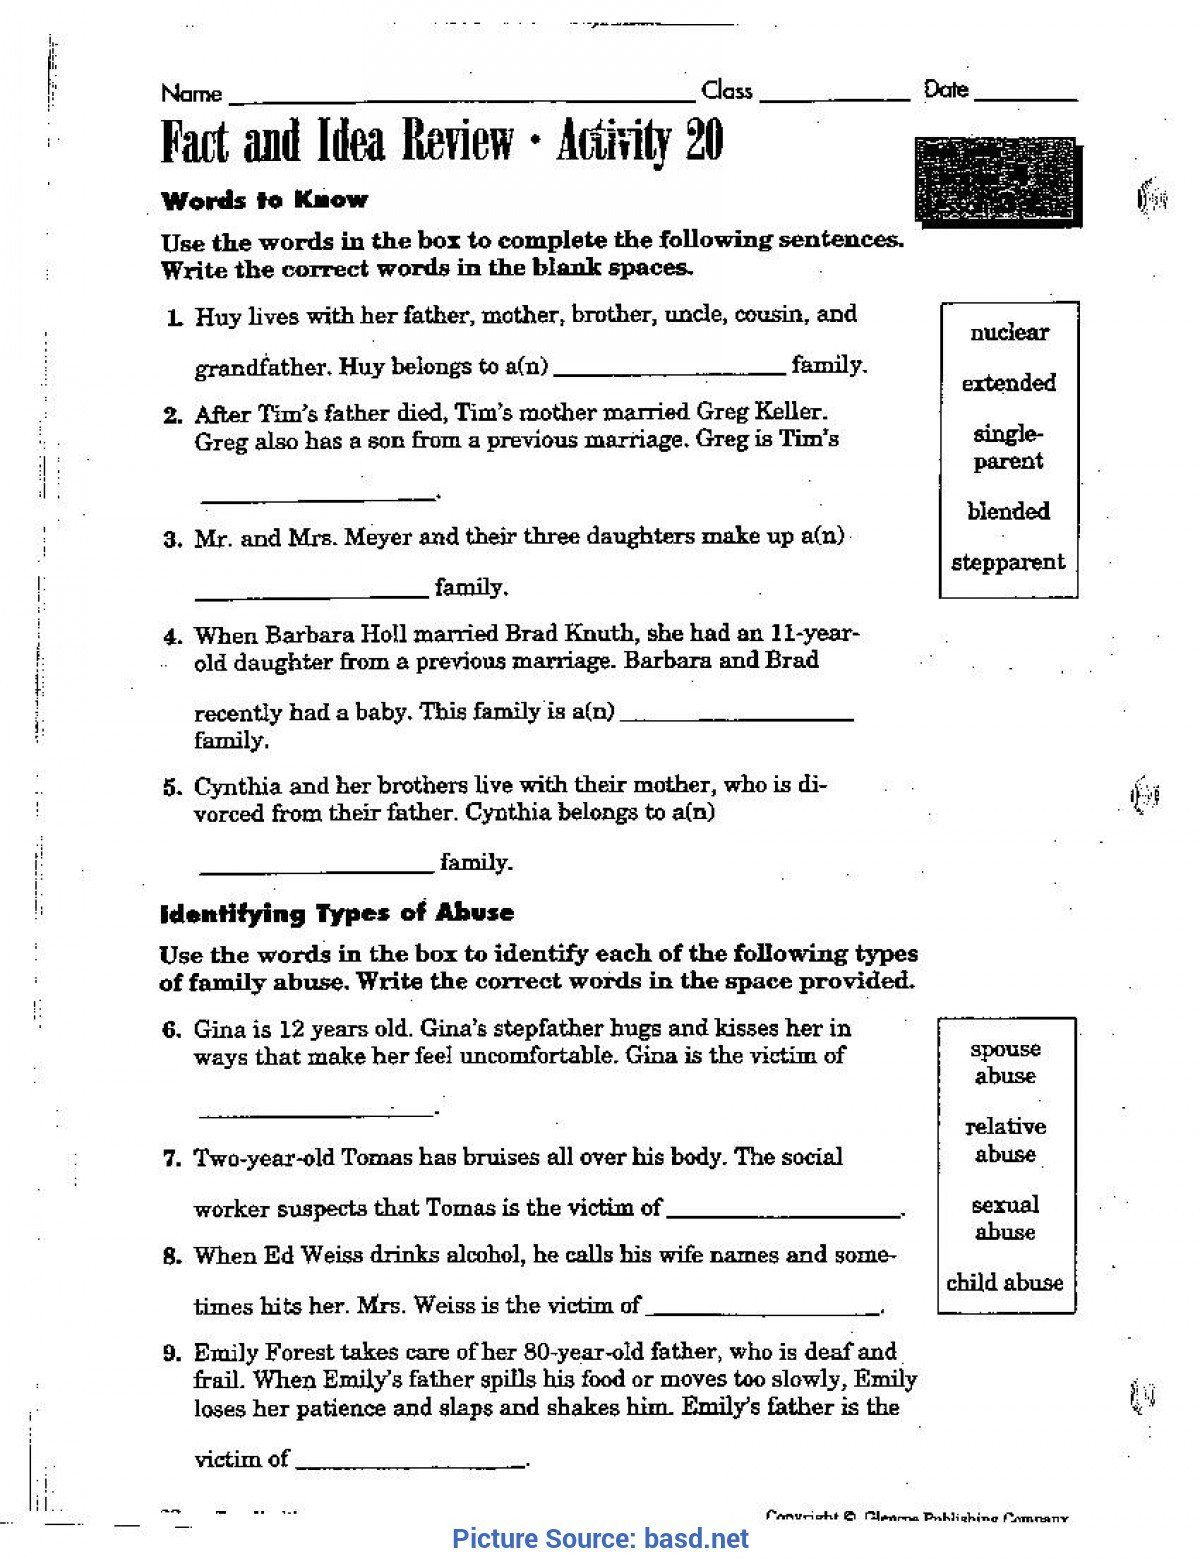 3rd Grade Health Worksheets Plex 3rd Grade Health Lesson